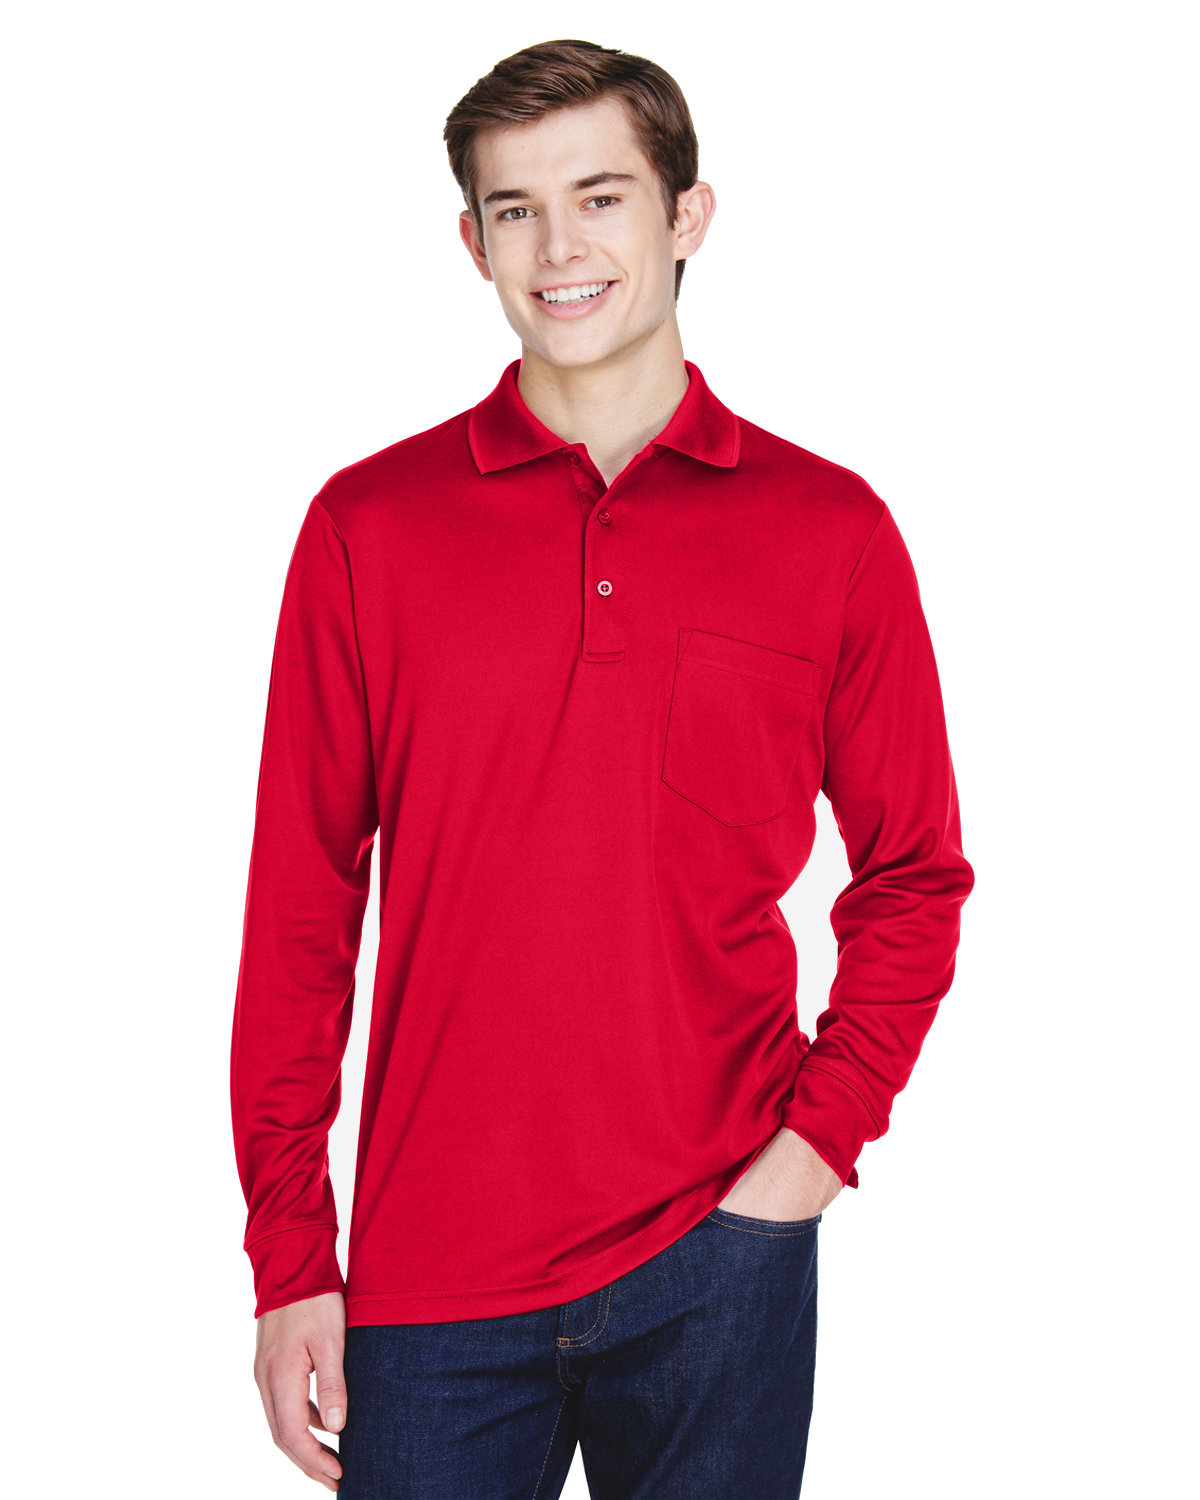 Core 365 Adult Pinnacle Performance Long-Sleeve Piqué Polo with Pocket CLASSIC RED